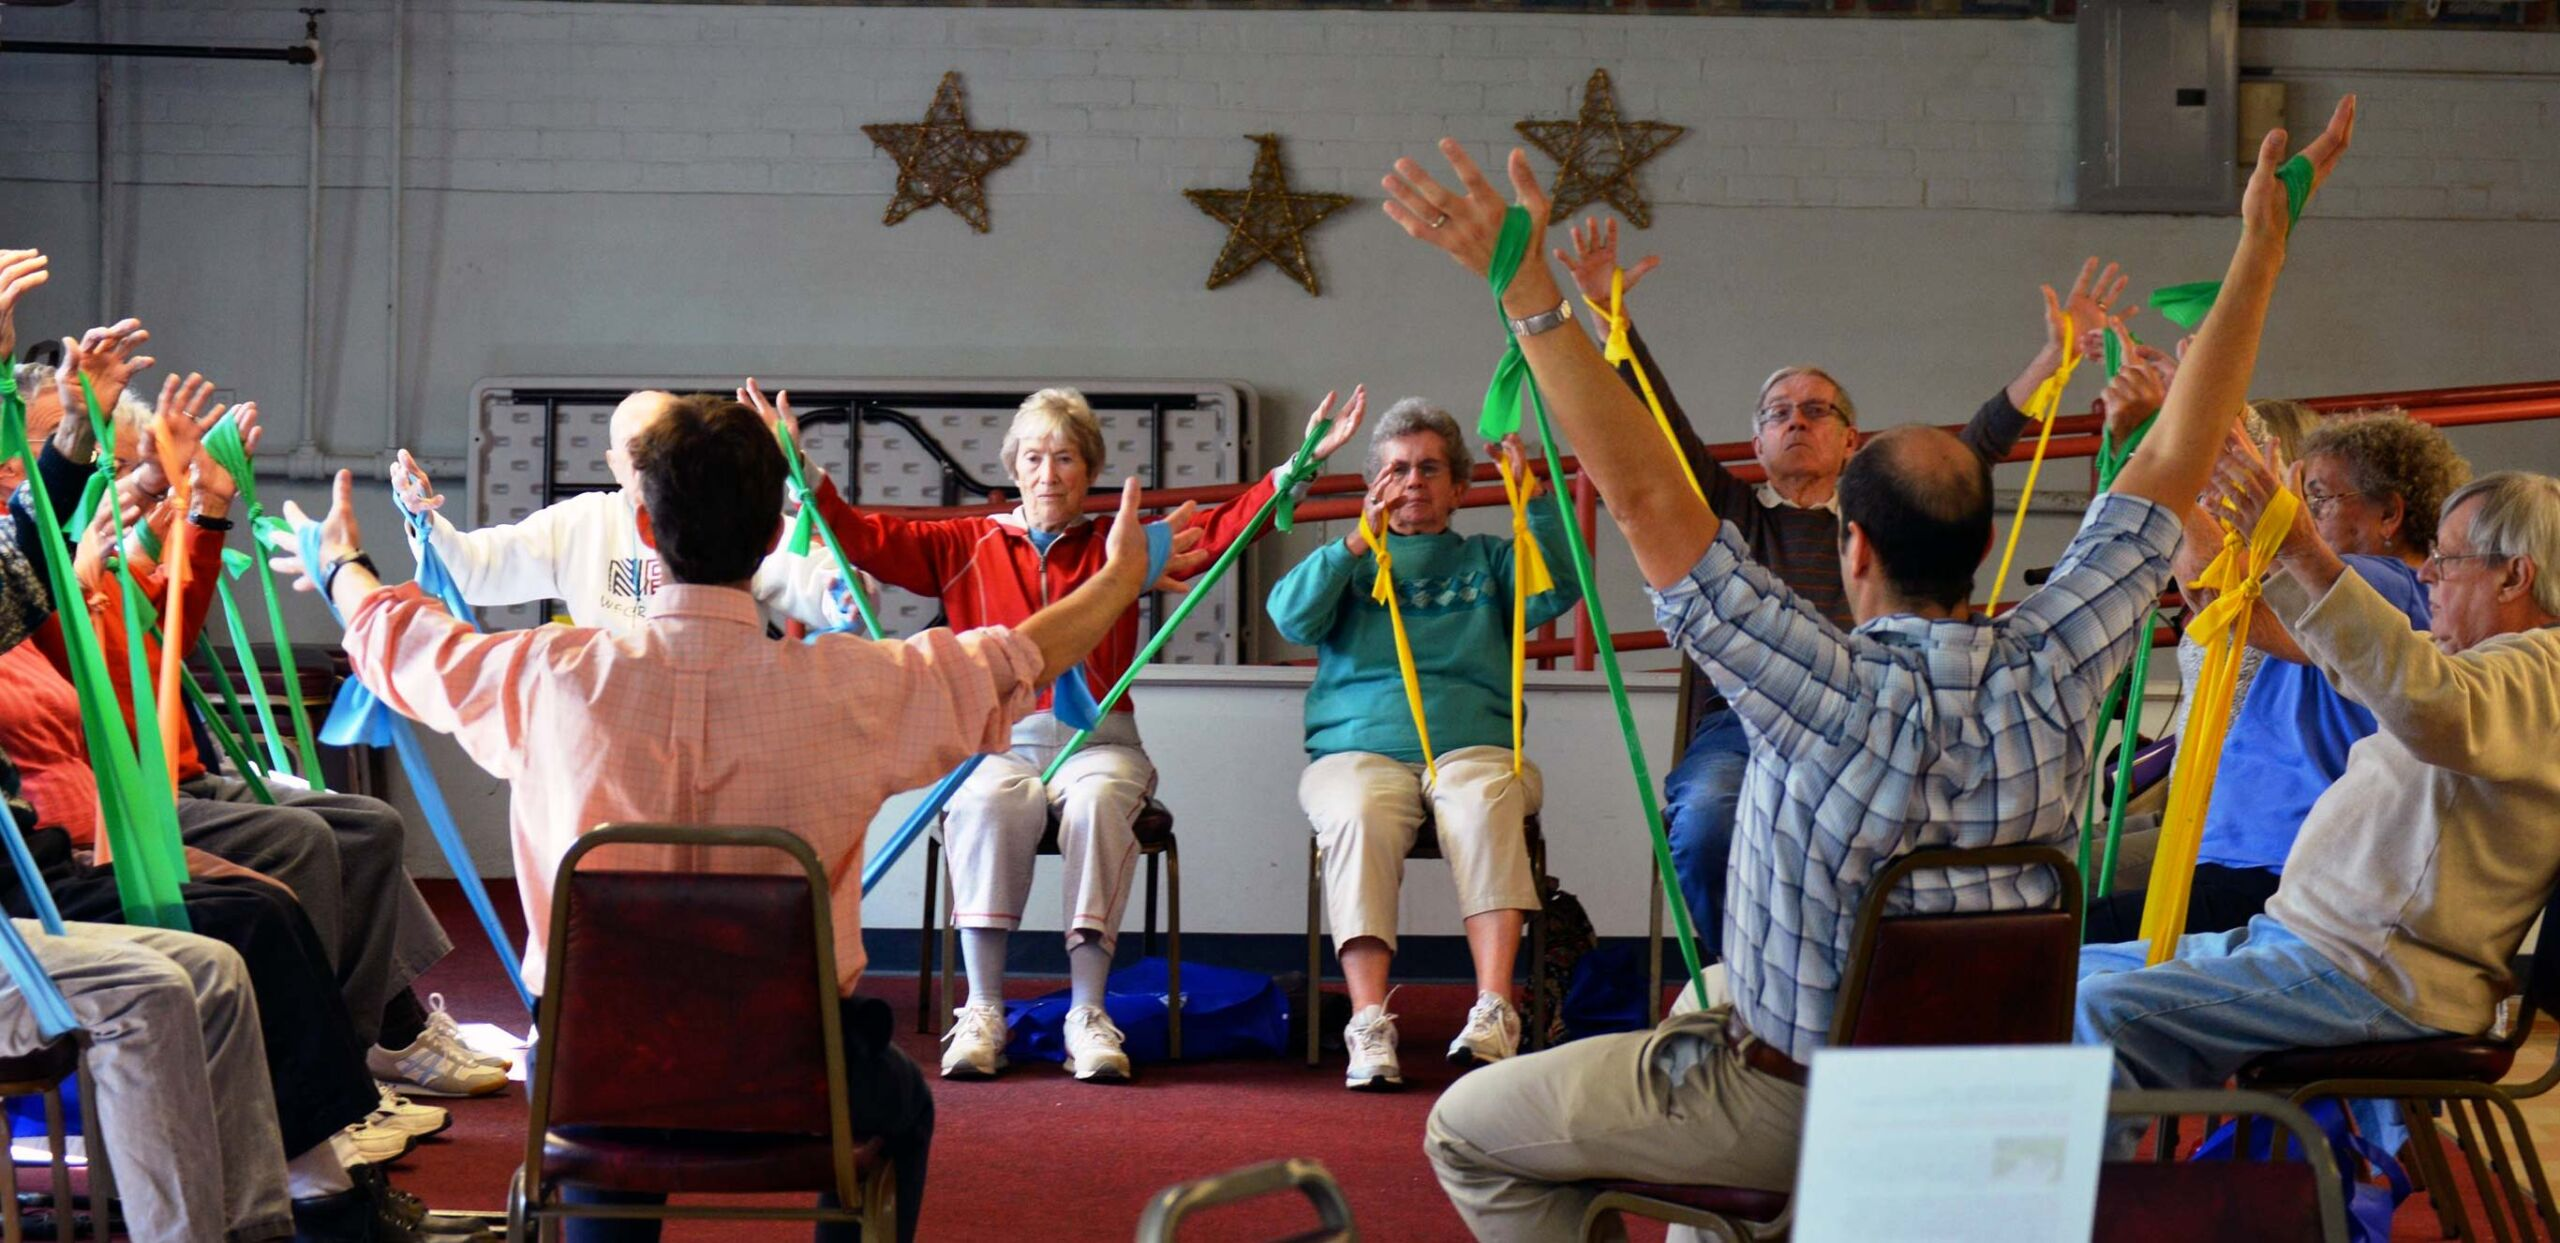 Seniors use stretch bands in an exercise class, Cooley Dickinson Medical Group VNA & Hospice, Northampton, MA 01060.